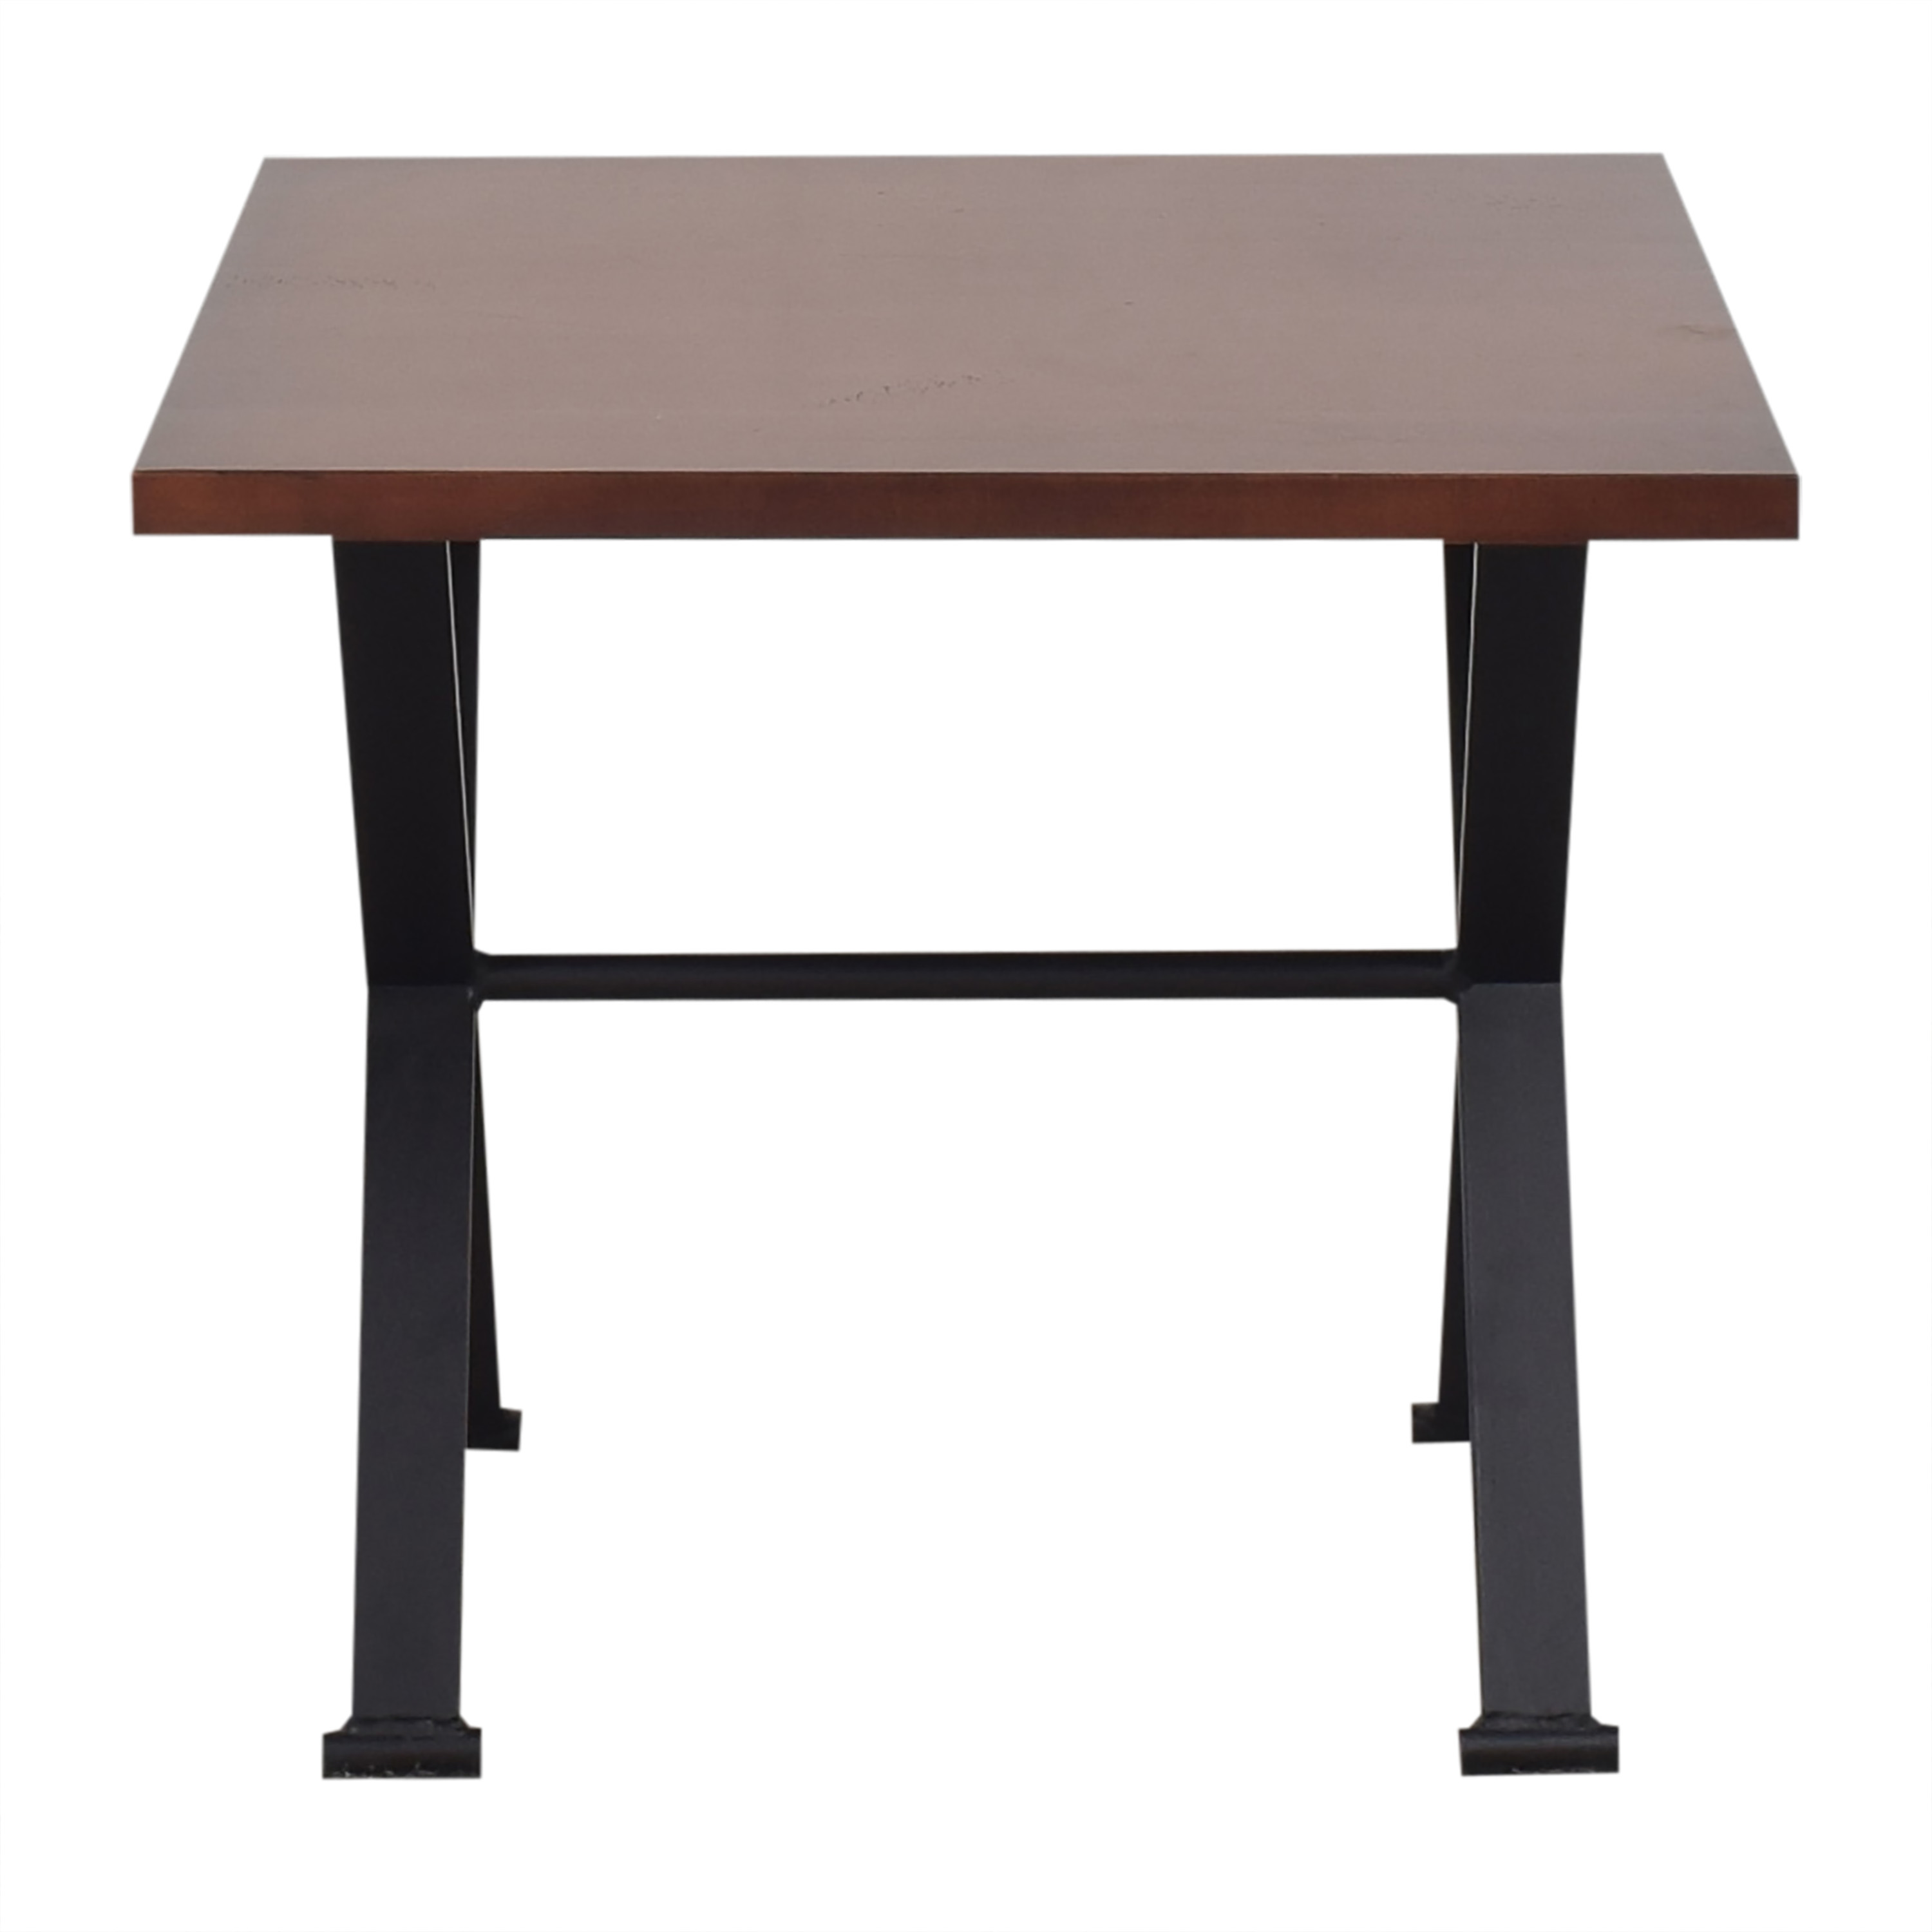 Charleston Forge Charleston Forge Square End Table End Tables